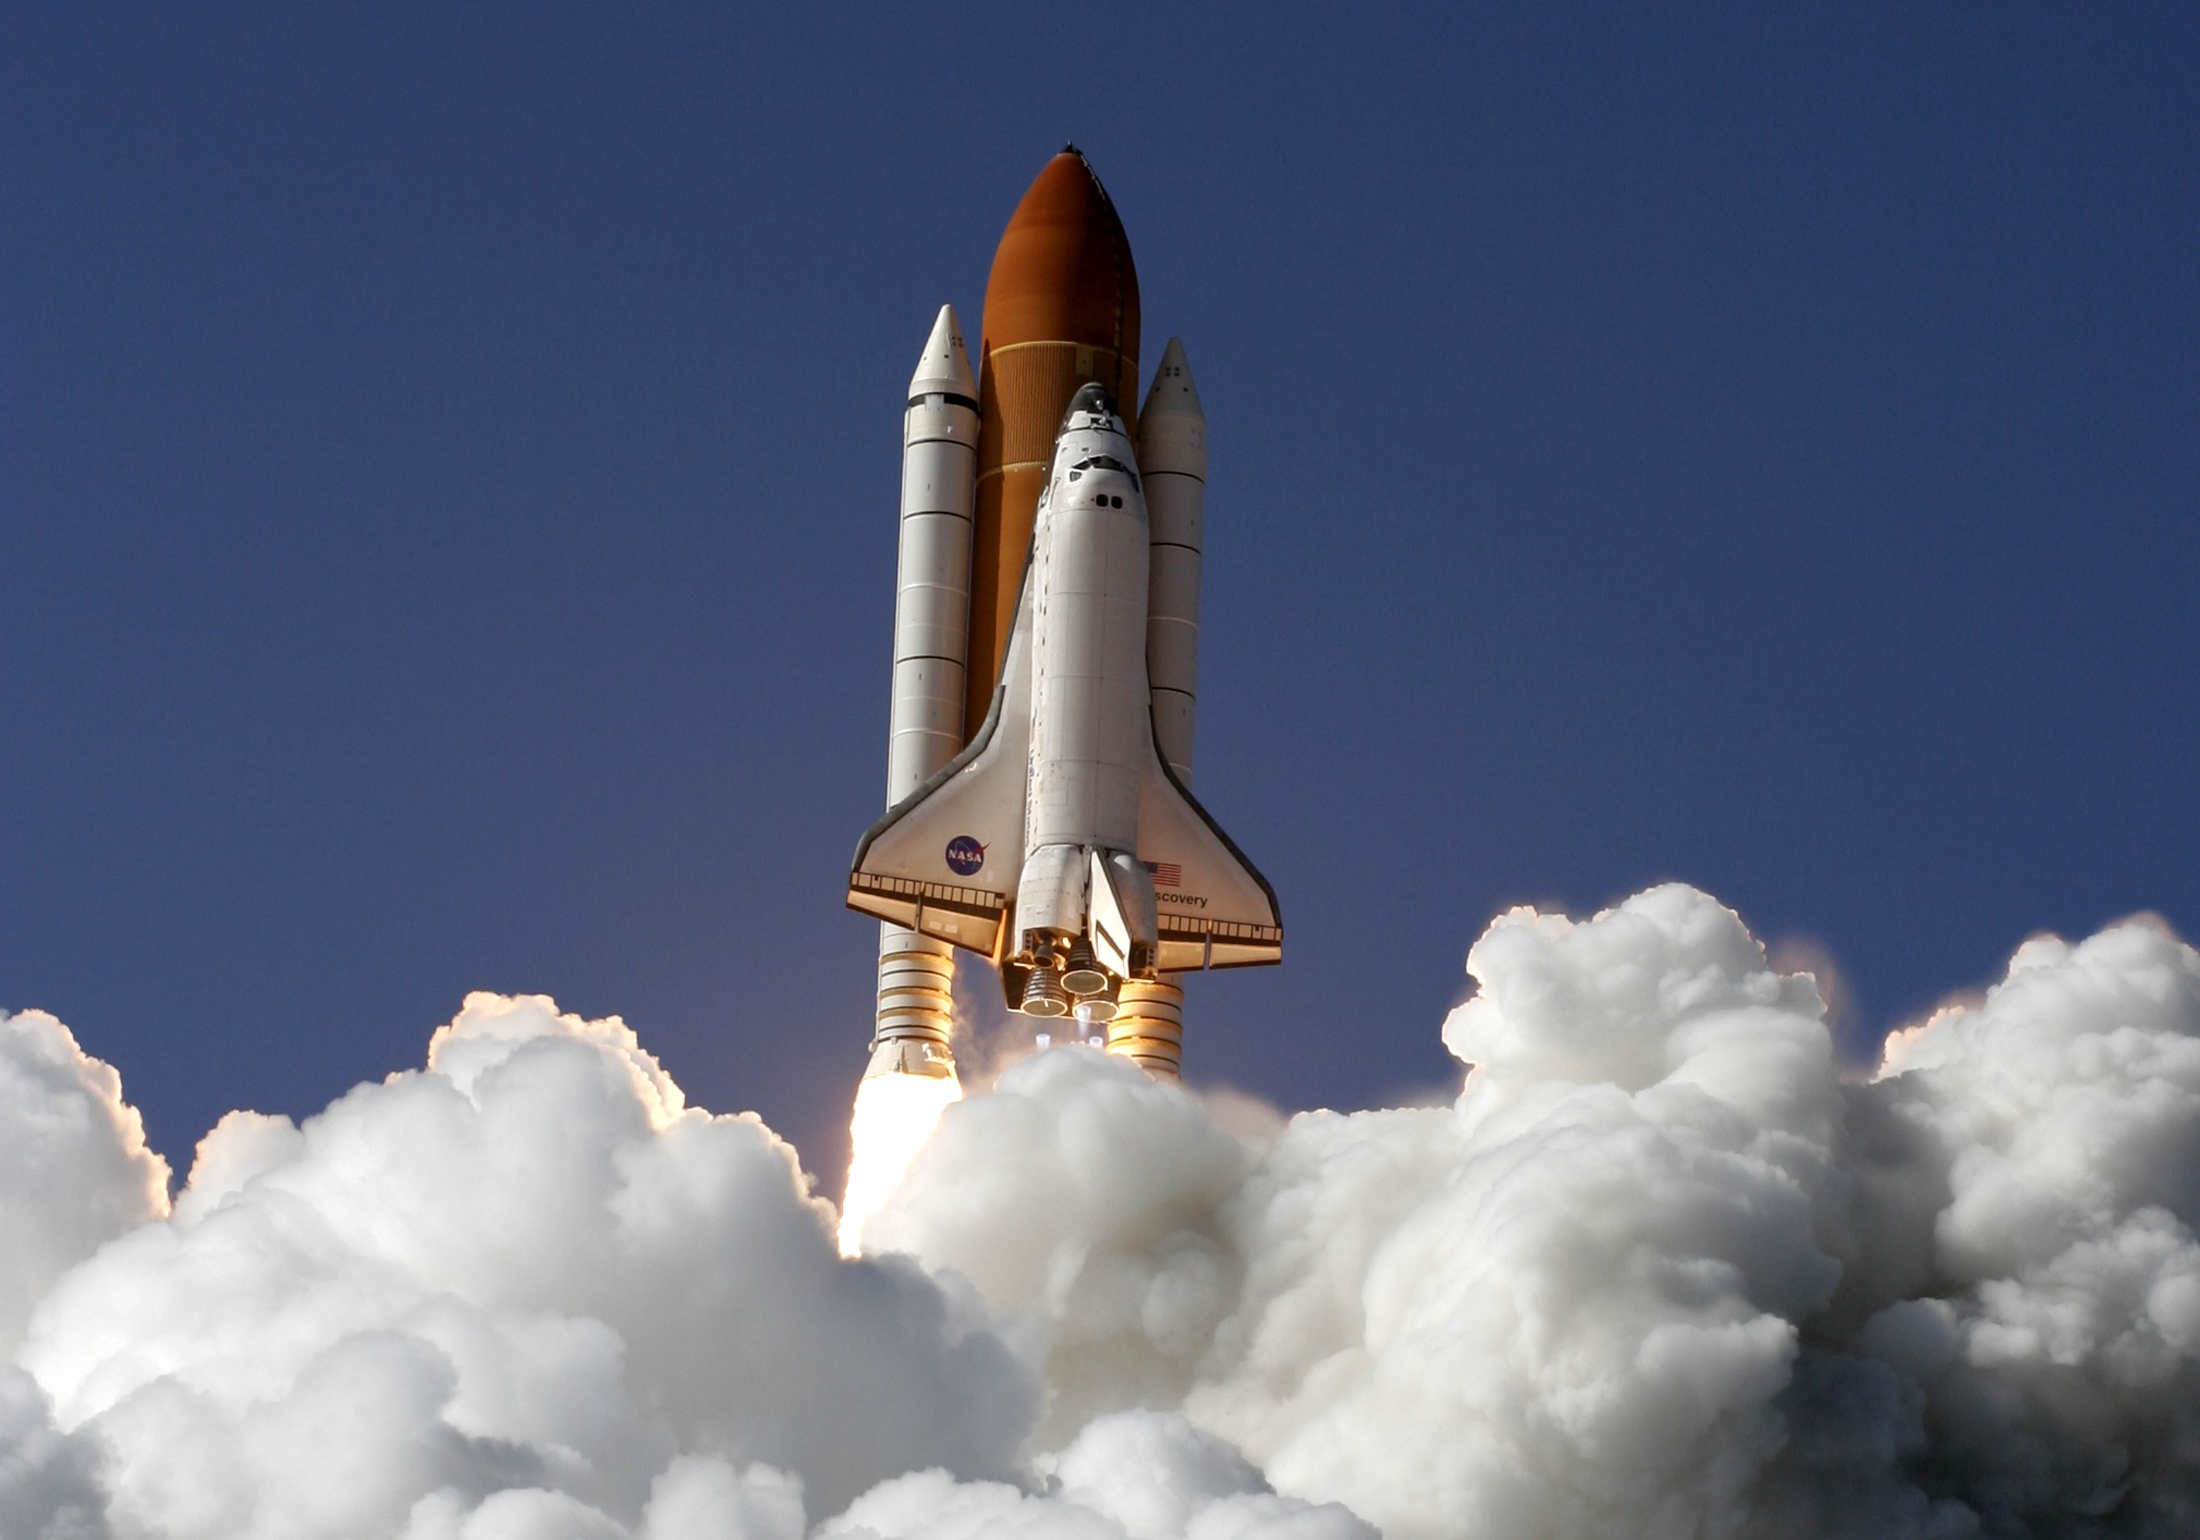 shuttle launch from space station - photo #48